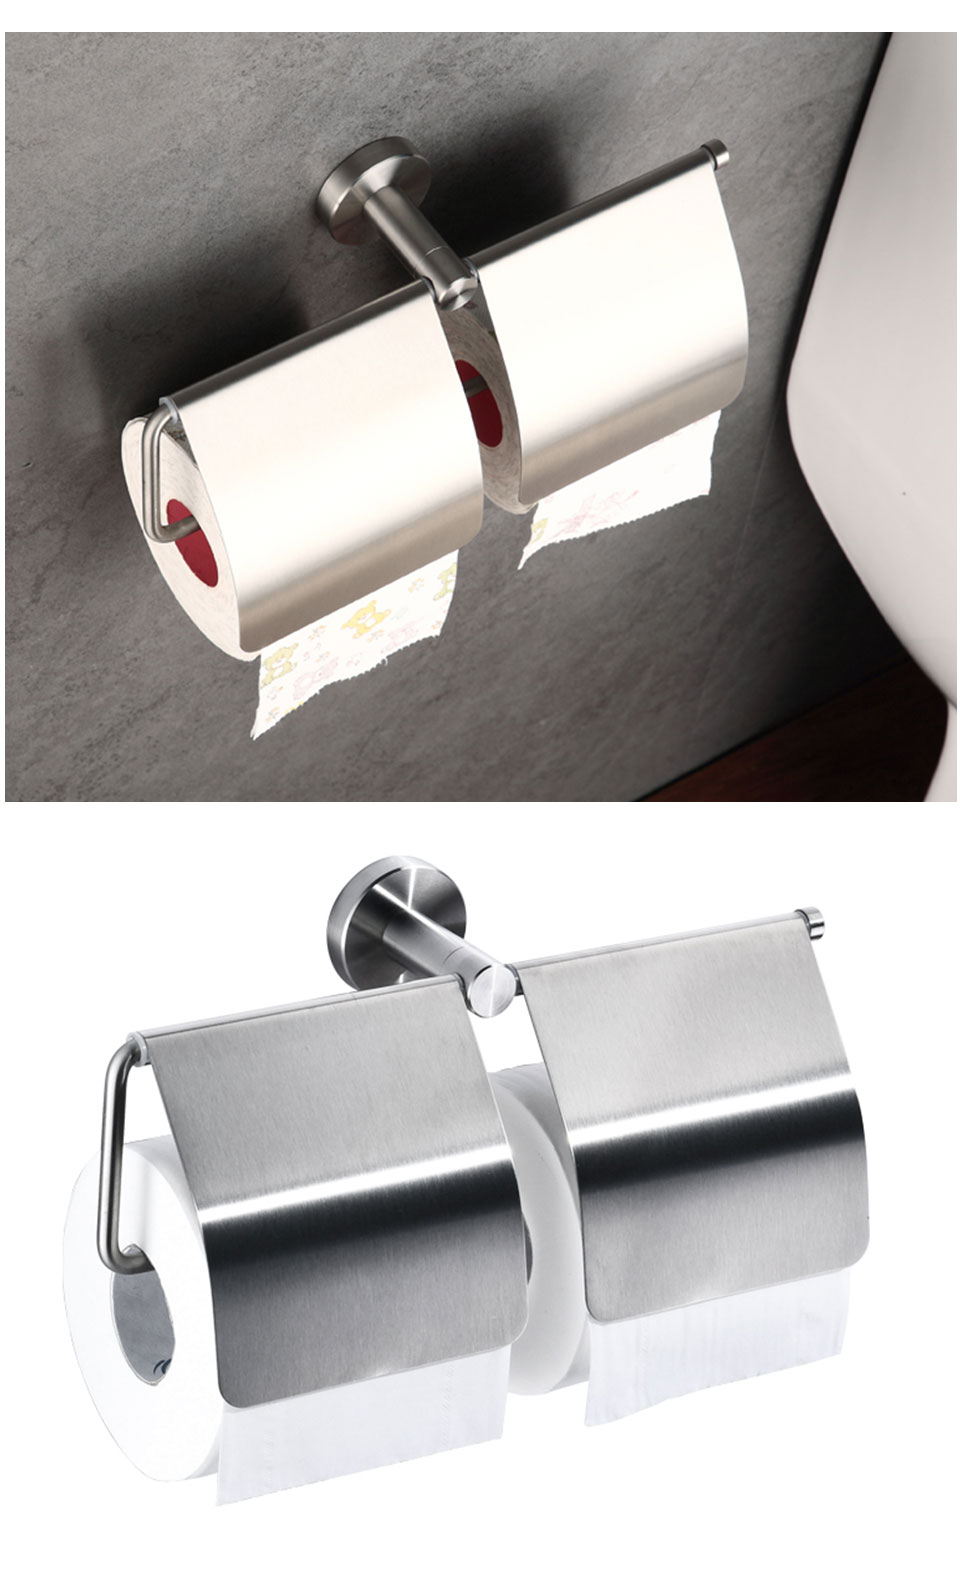 Toilet Paper Holder 304 Stainless Steel, Double Toilet Roll Holder for Bathroom Kitchen Stick Wall Mounted Brushed